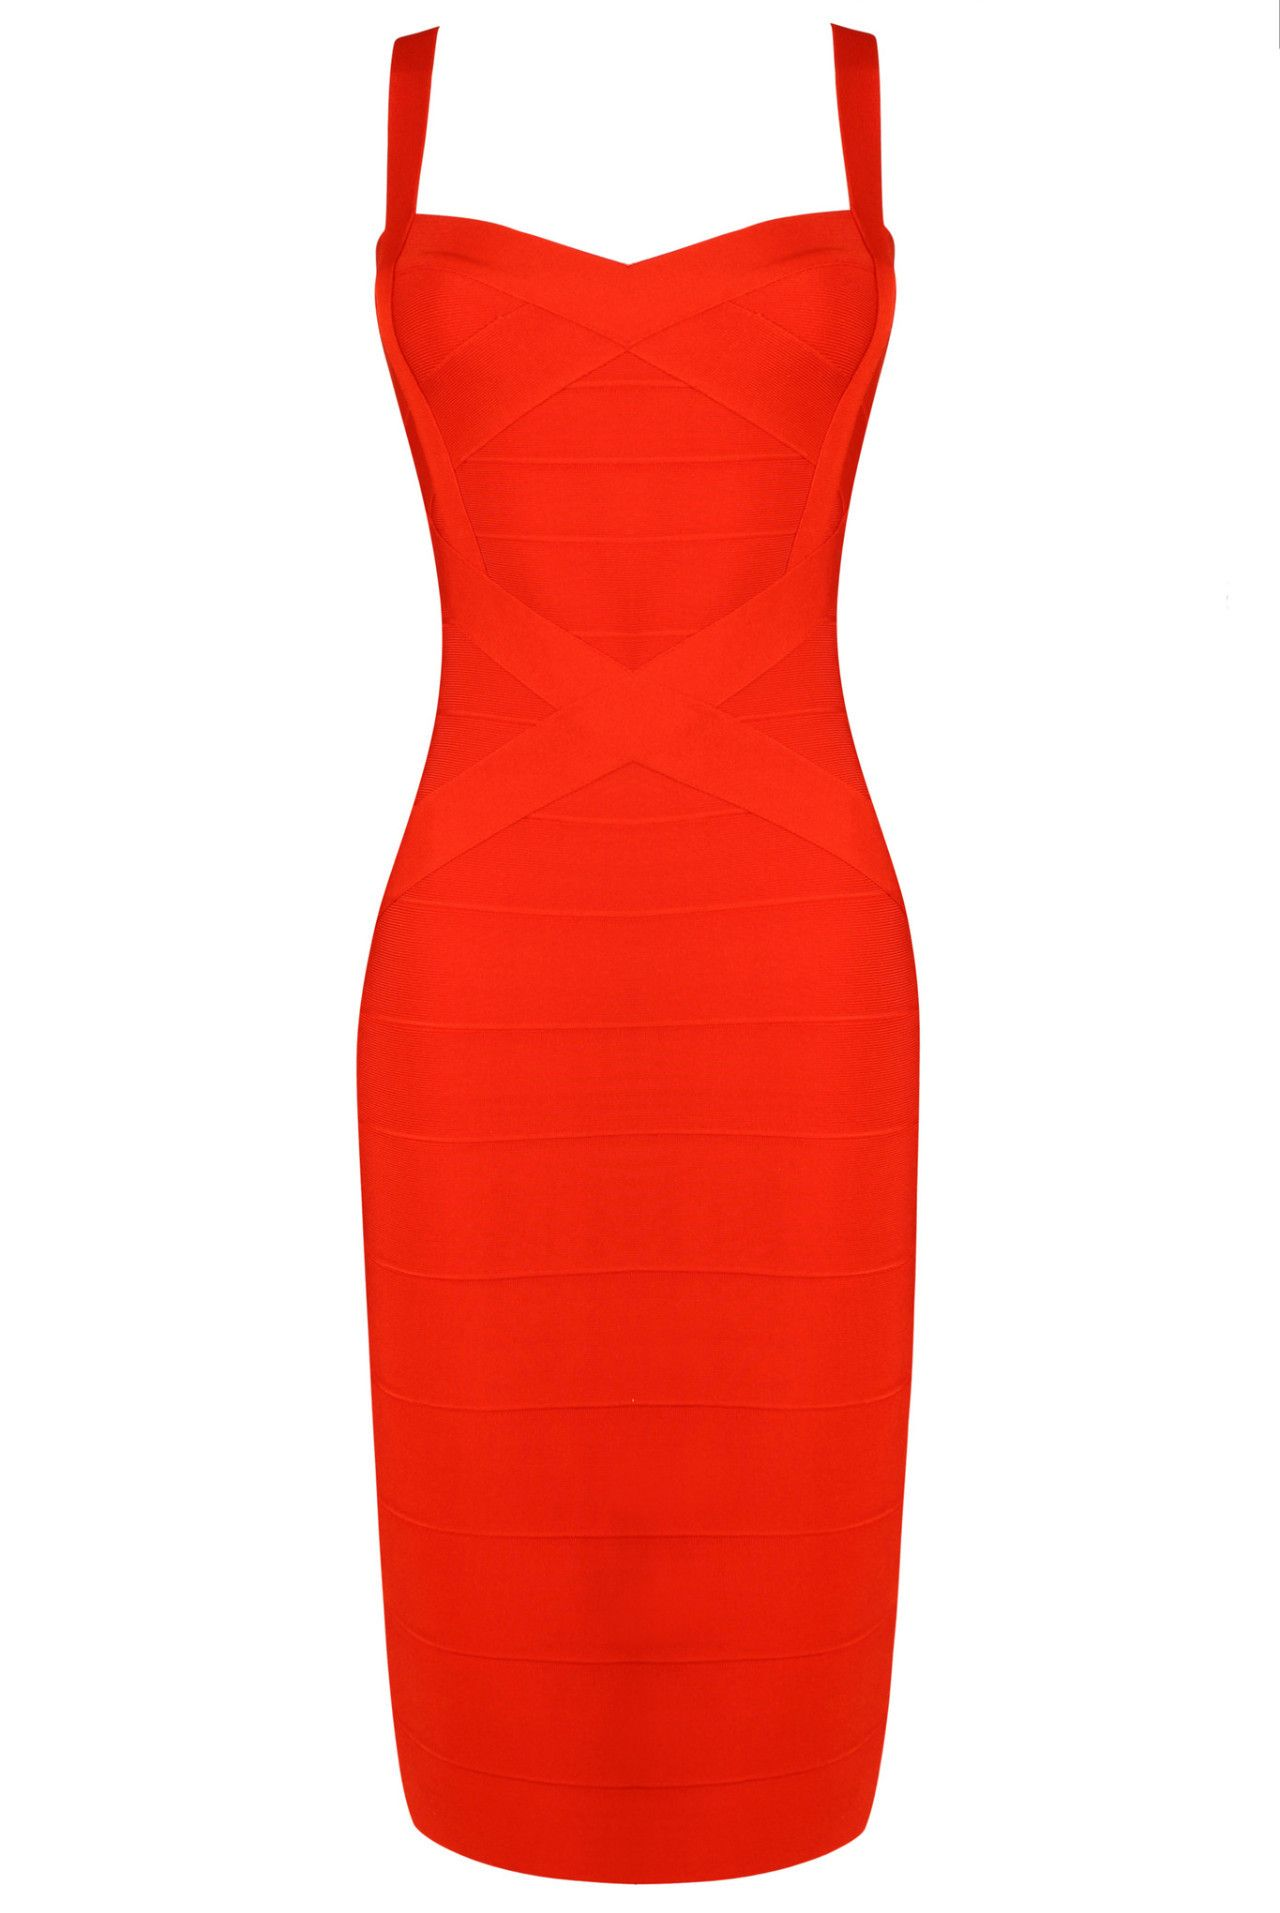 'Ruby' Red Pencil Bandage Dress